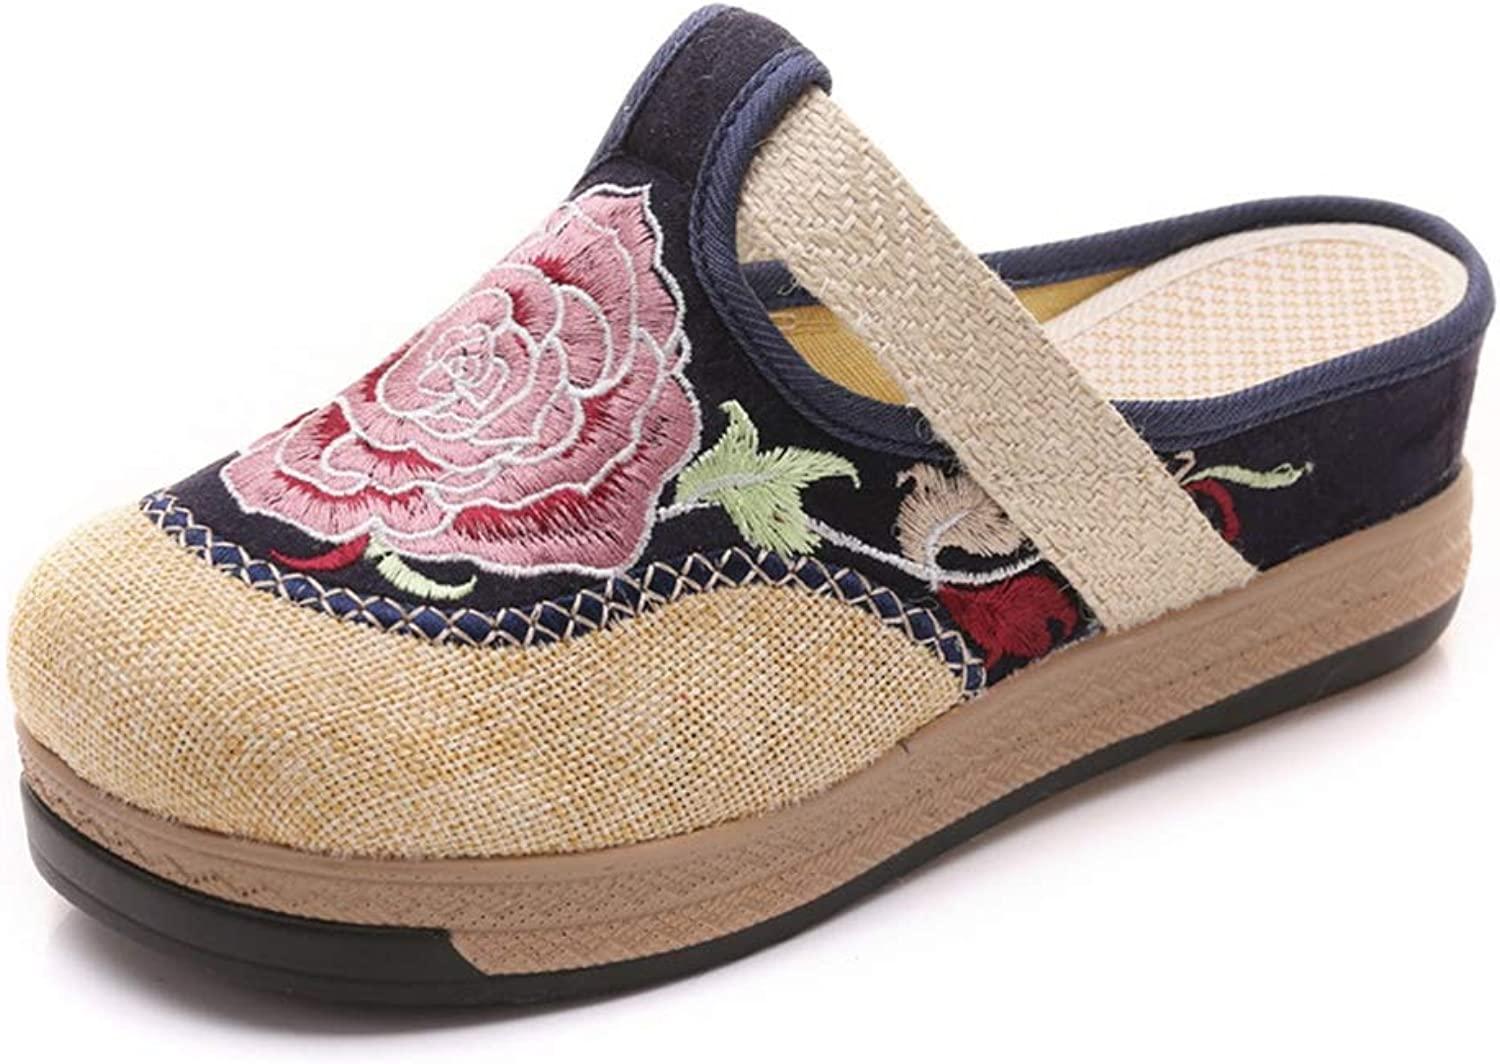 Zarbrina Womens Closed Toe Slip on Espadrilles Sandals Mules Cotton Linen Retro Ladies Flat Slides Embroidery Canvas Vintage Ethnic Footwear